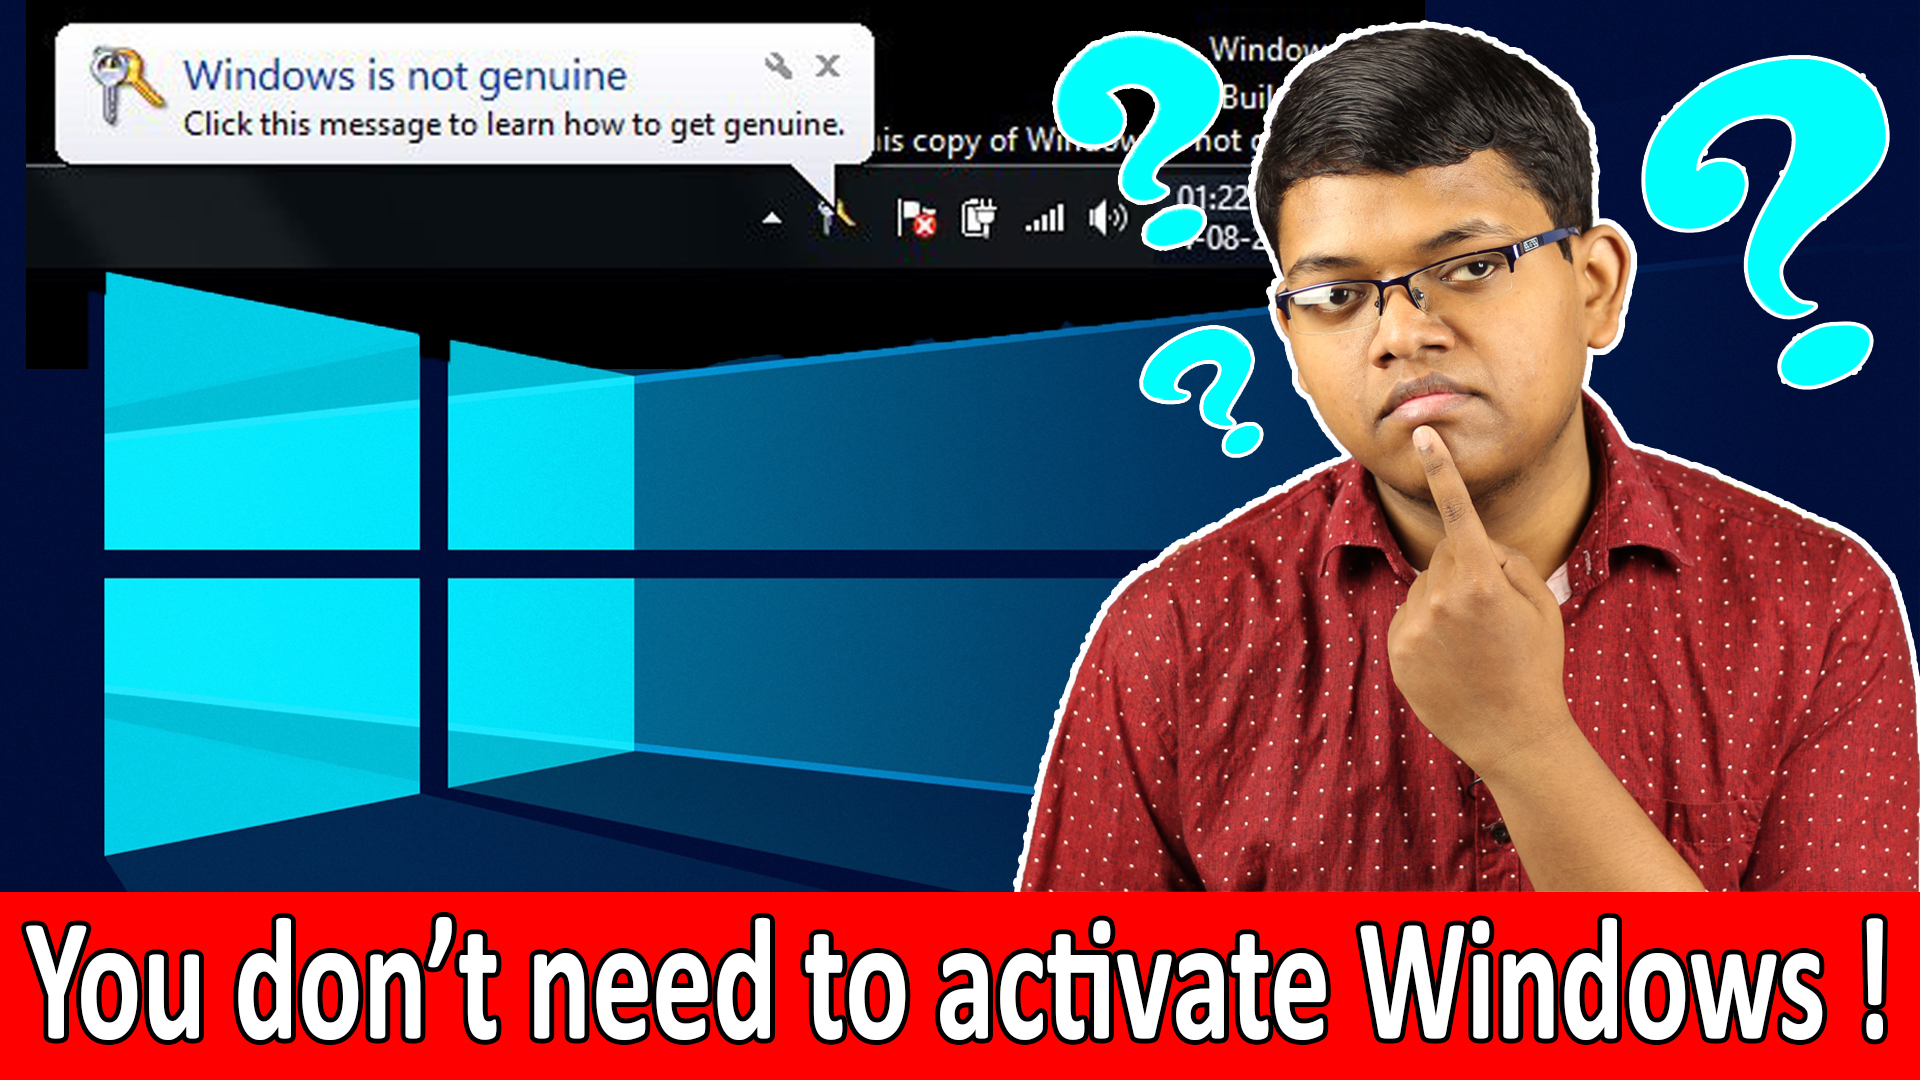 Do You need to Activate Windows?